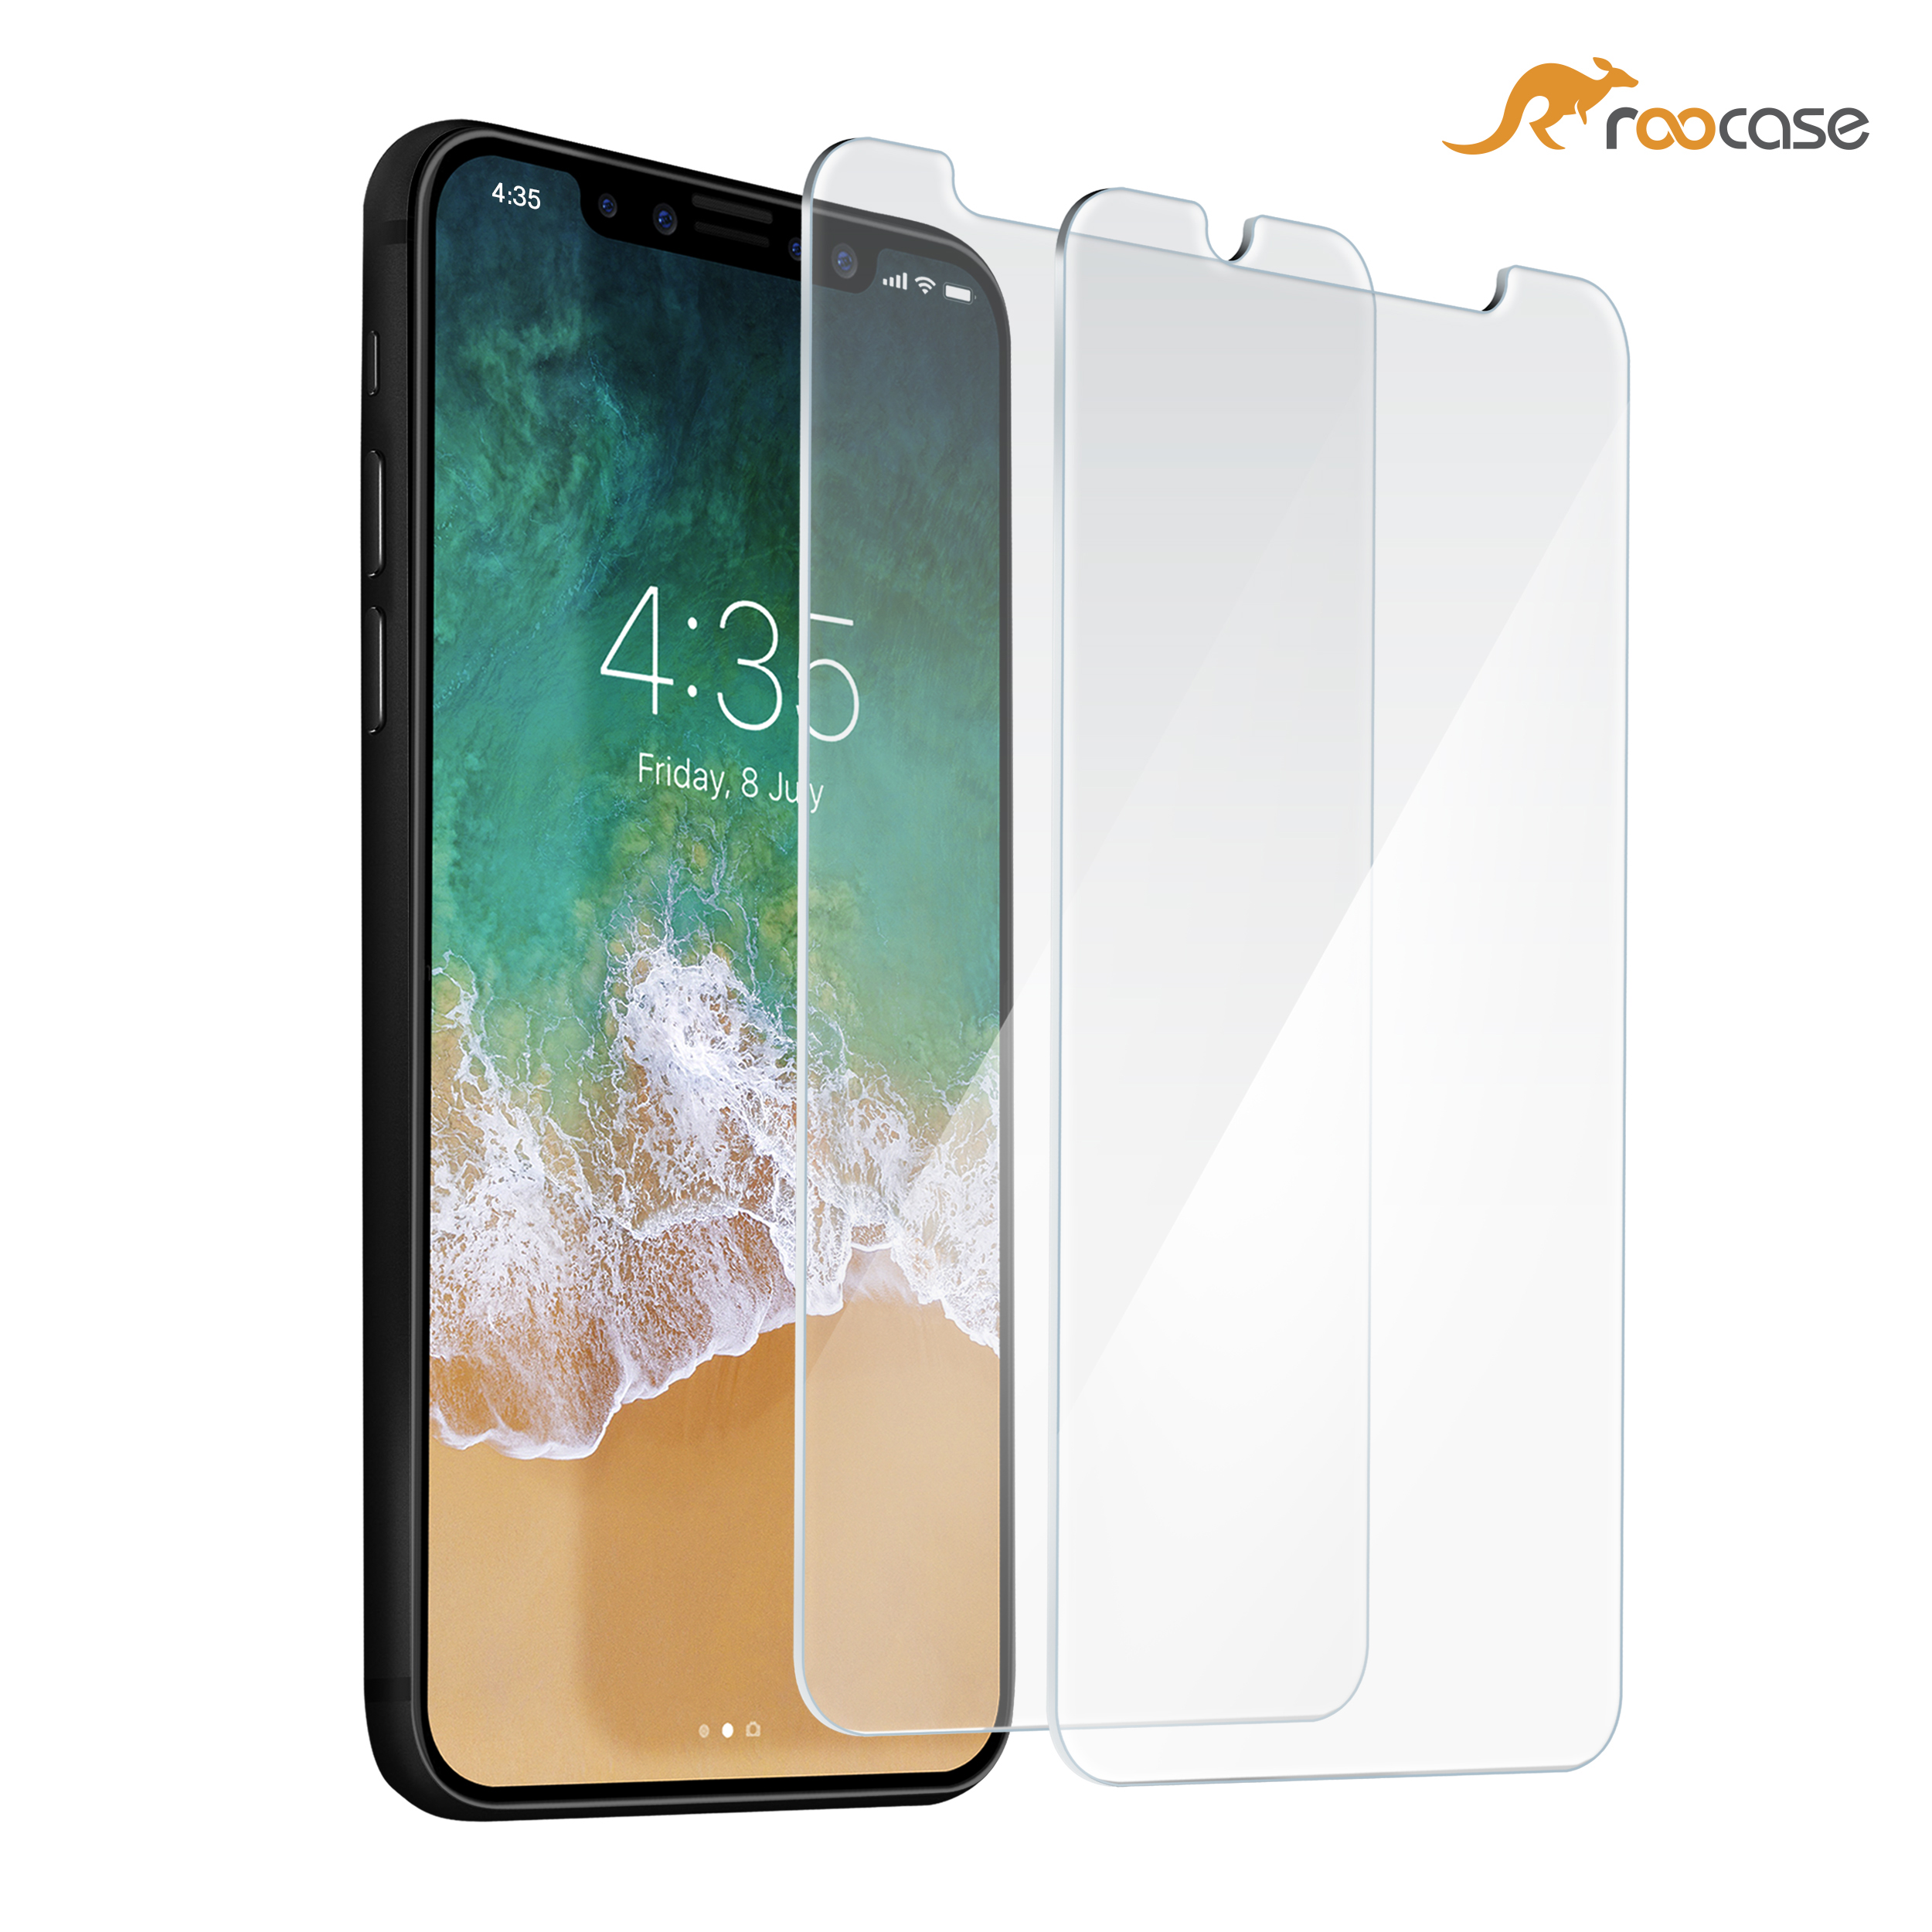 iPhone X Screen Protector, rooCASE 2-Pack Tempered Glass Screen Protector for Apple iPhone 10 - 9H Hardness, Premium Clarity, Scratch-Resistant, Lifetime Warranty